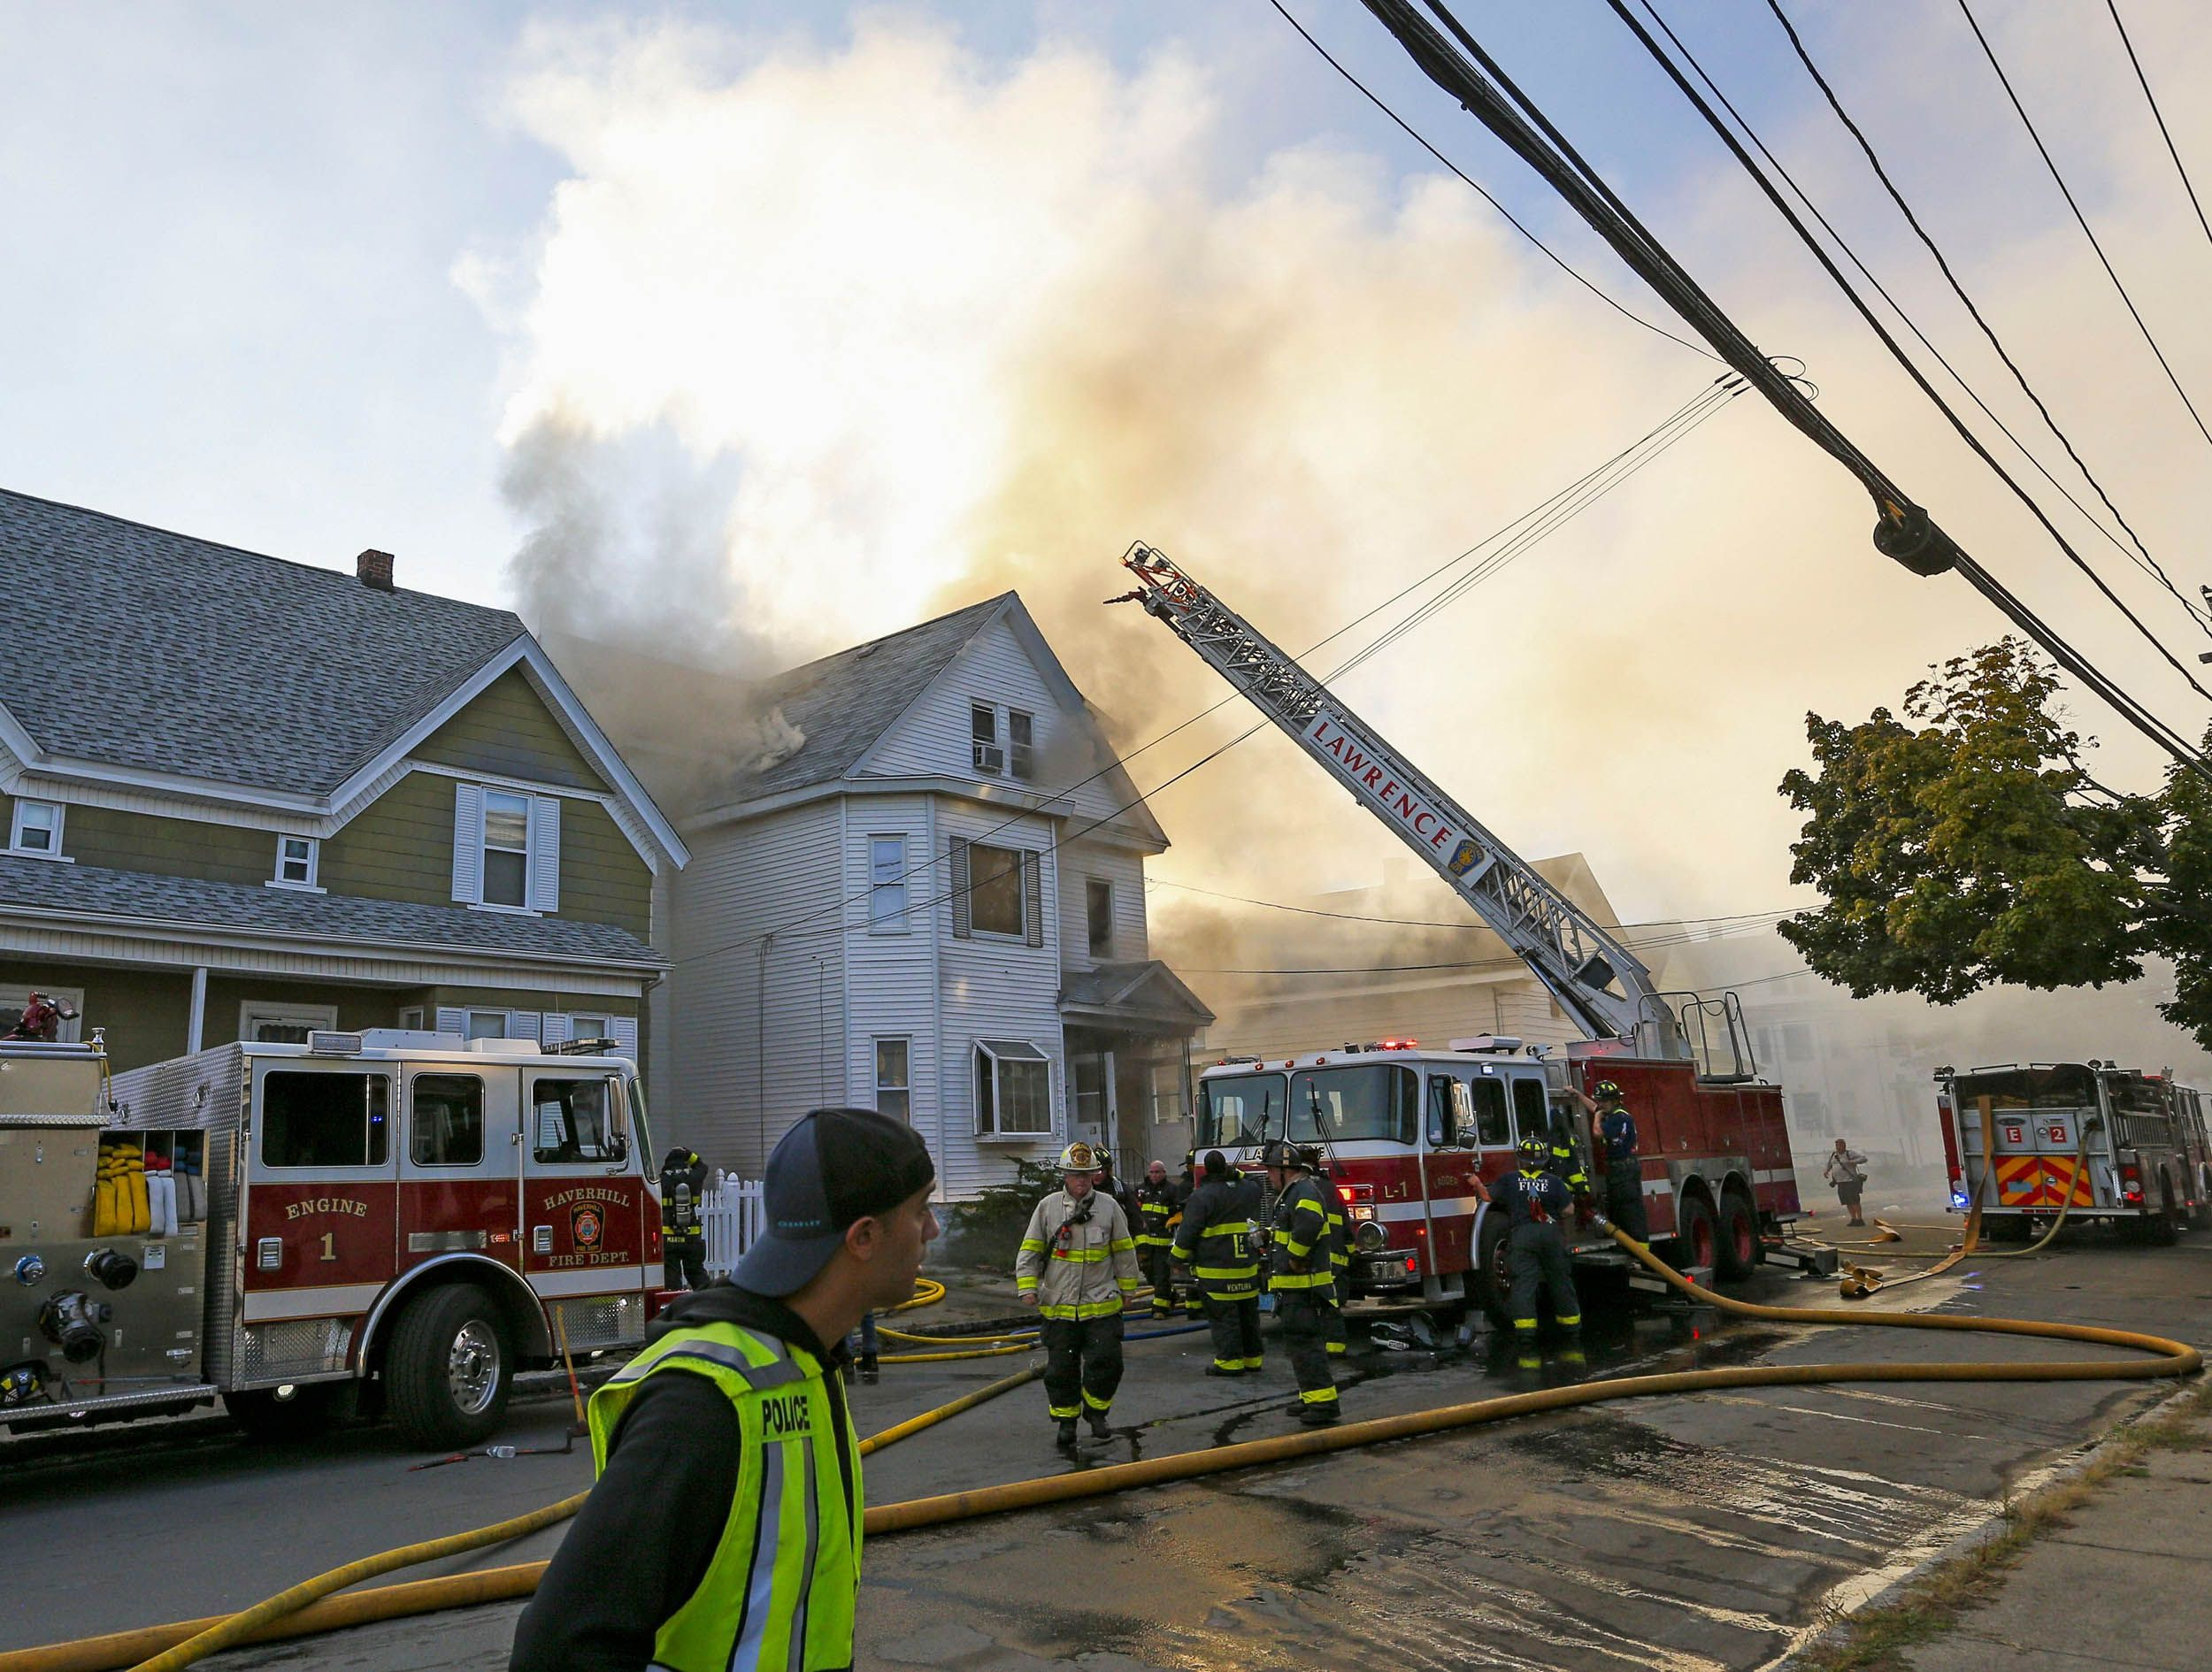 A scene from the explosion in Lawrence, Massachusetts